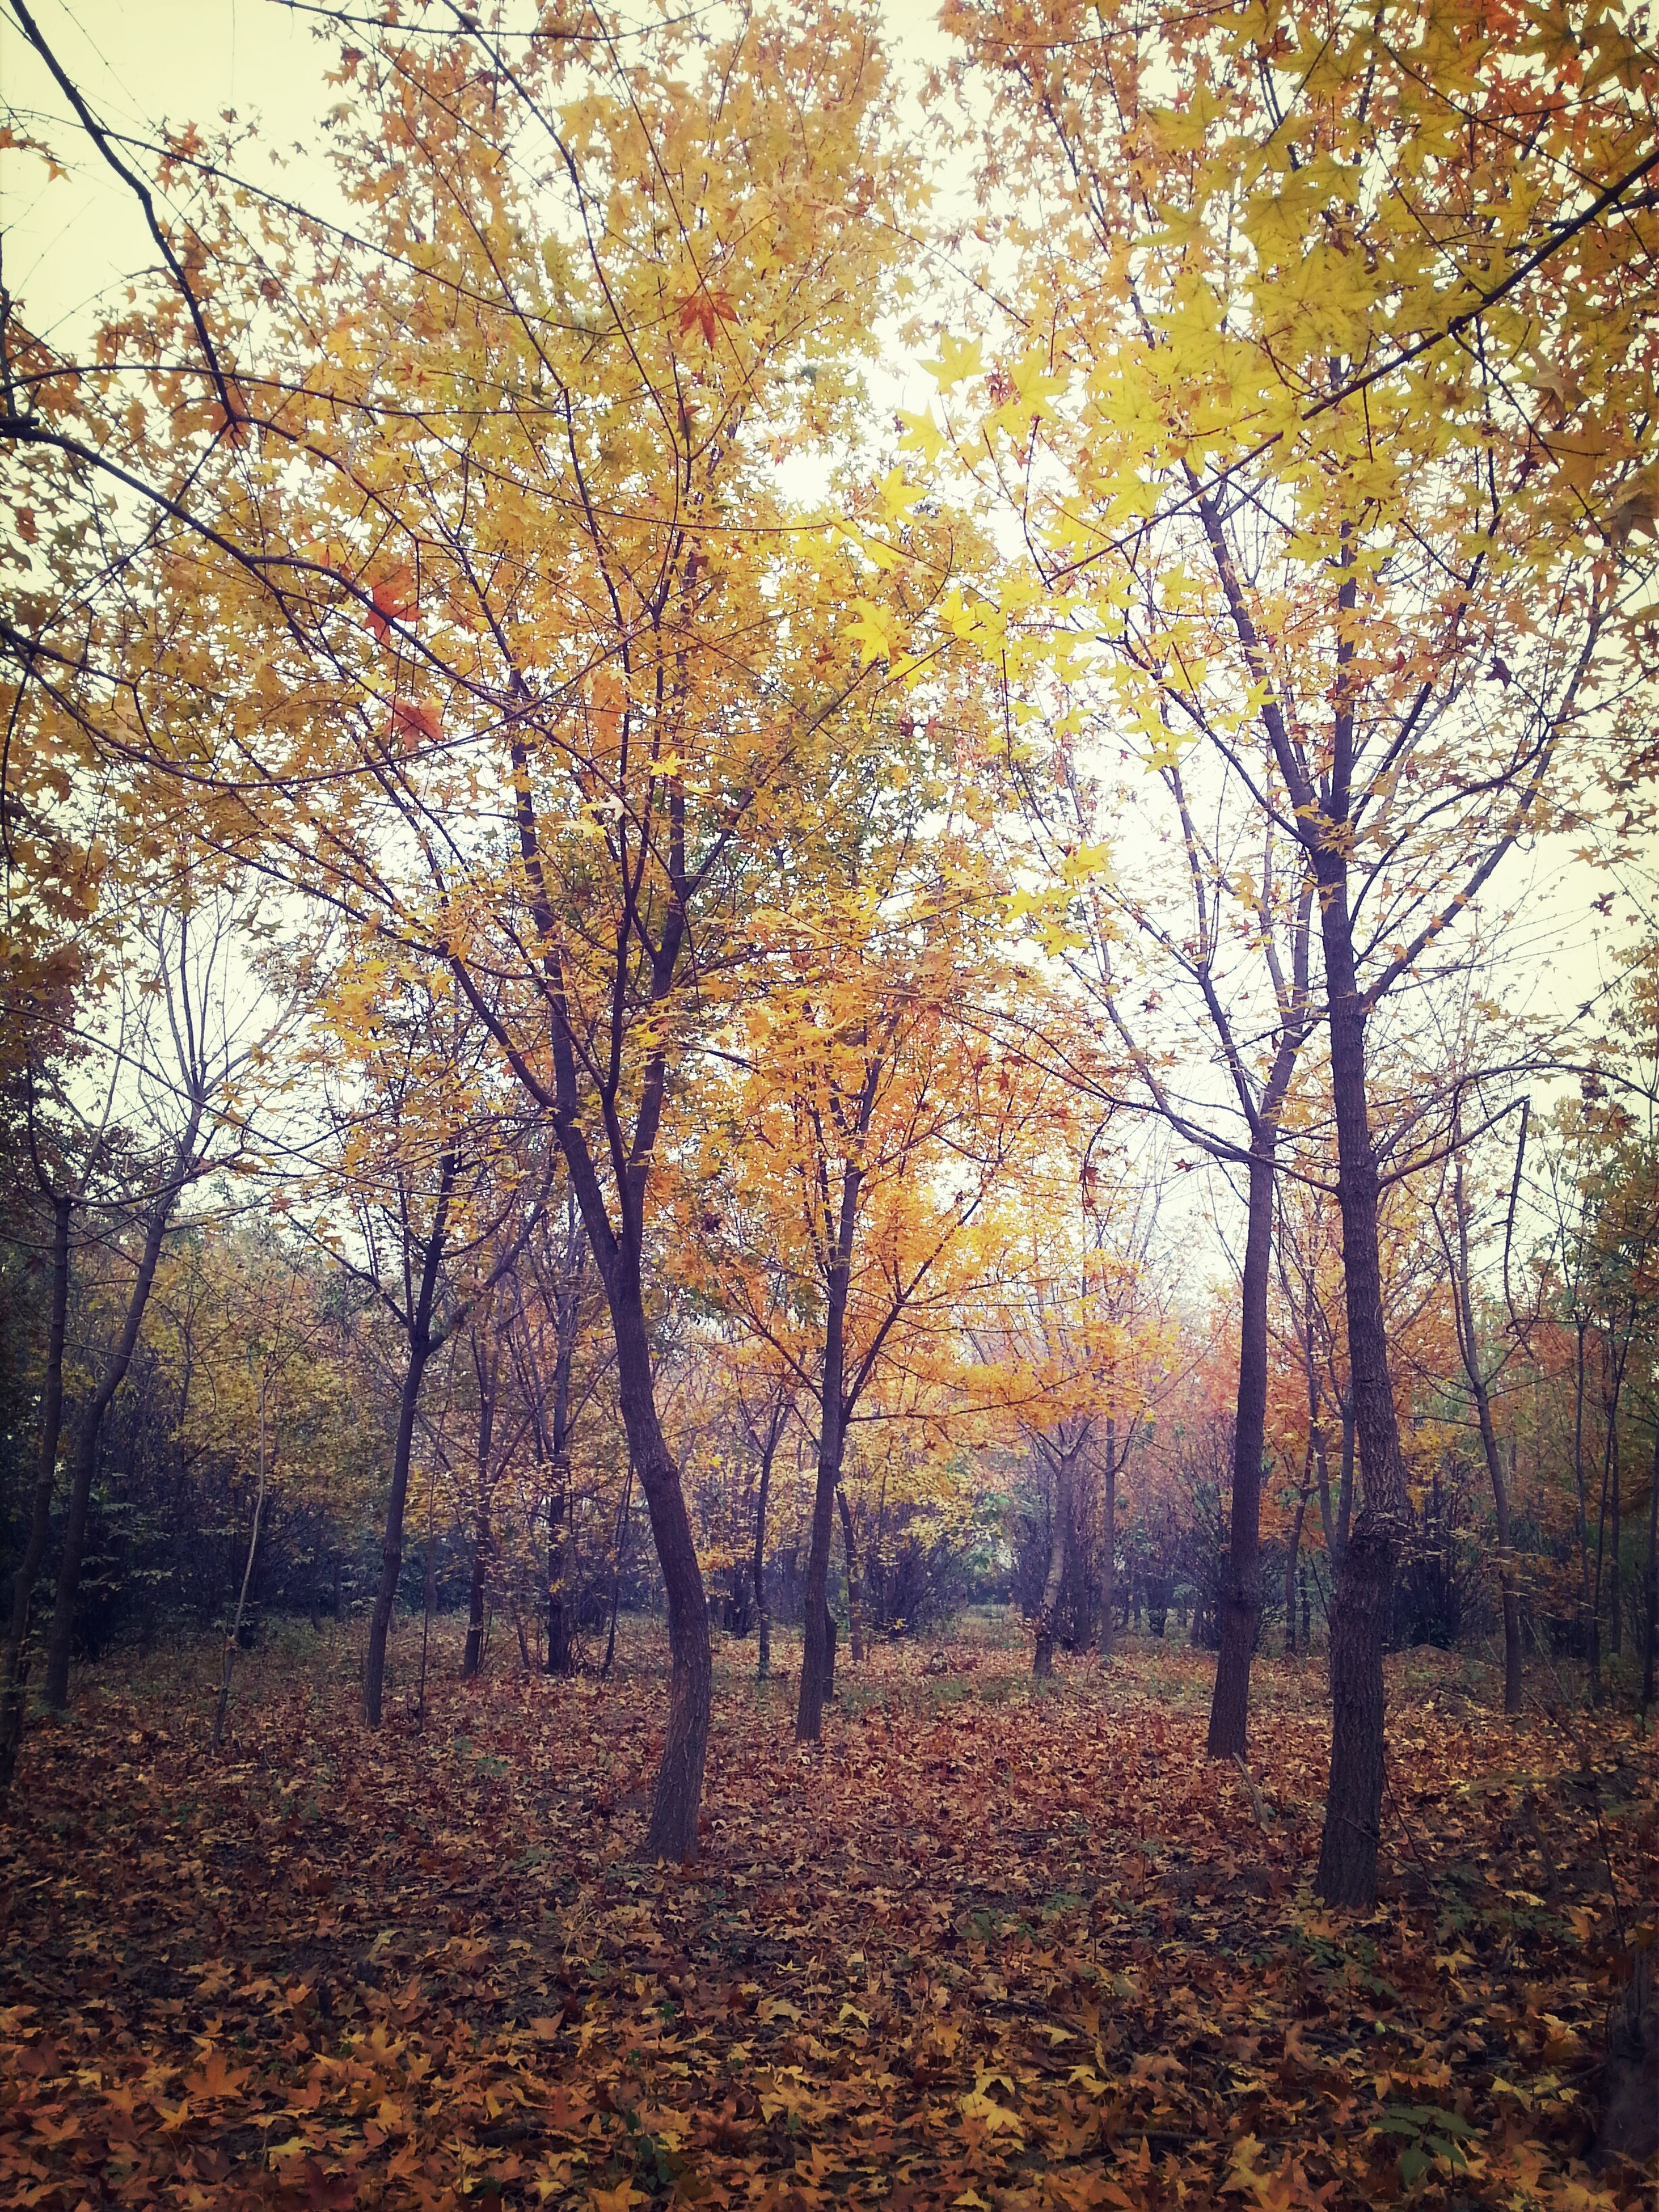 tree, autumn, change, season, tranquility, nature, branch, beauty in nature, tranquil scene, leaf, scenics, growth, tree trunk, fallen, orange color, yellow, landscape, day, forest, park - man made space